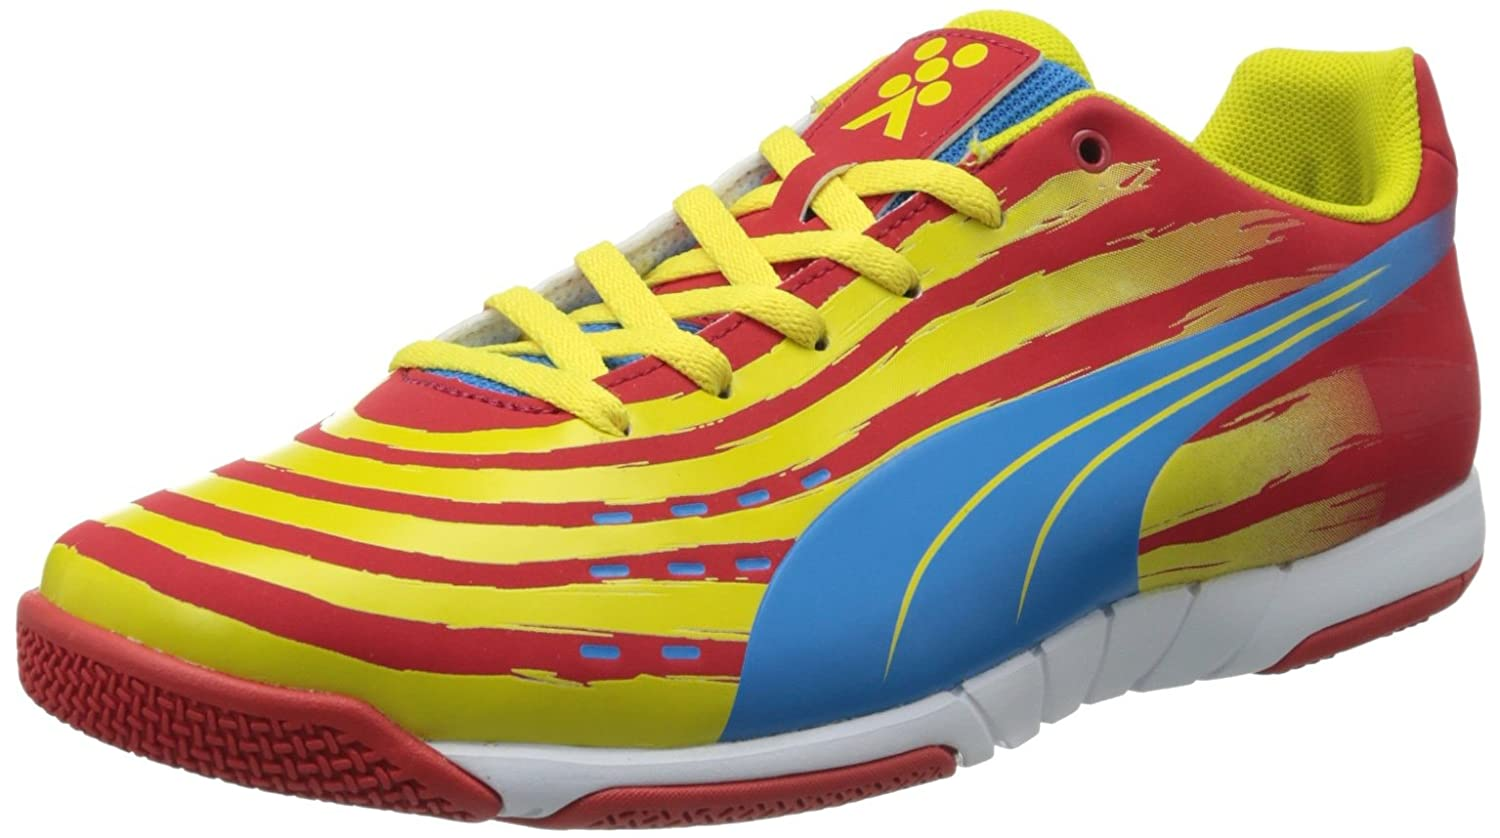 PUMA メンズ B00DOL3C6Q 4 mens_us|High Risk Red/Blue Aster/Vibrant Yellow/White High Risk Red/Blue Aster/Vibrant Yellow/White 4 mens_us